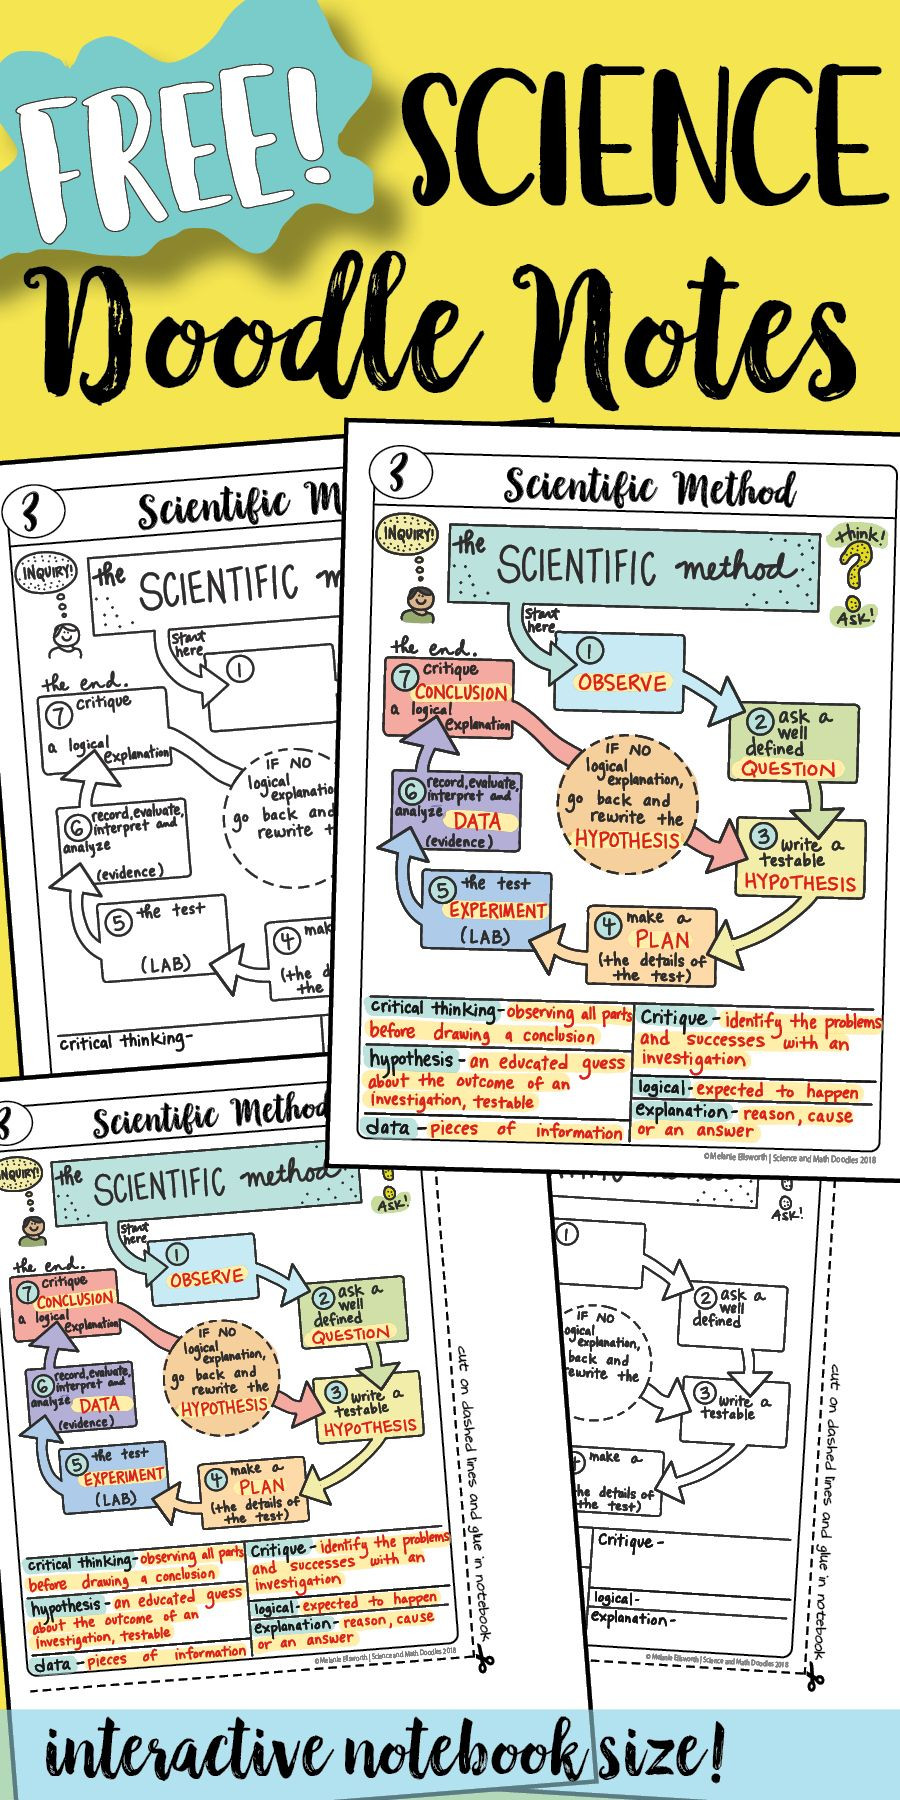 Scientific Method 3rd Grade Worksheet Free Scientific Method Doodle Sheet Easy to Use Notes